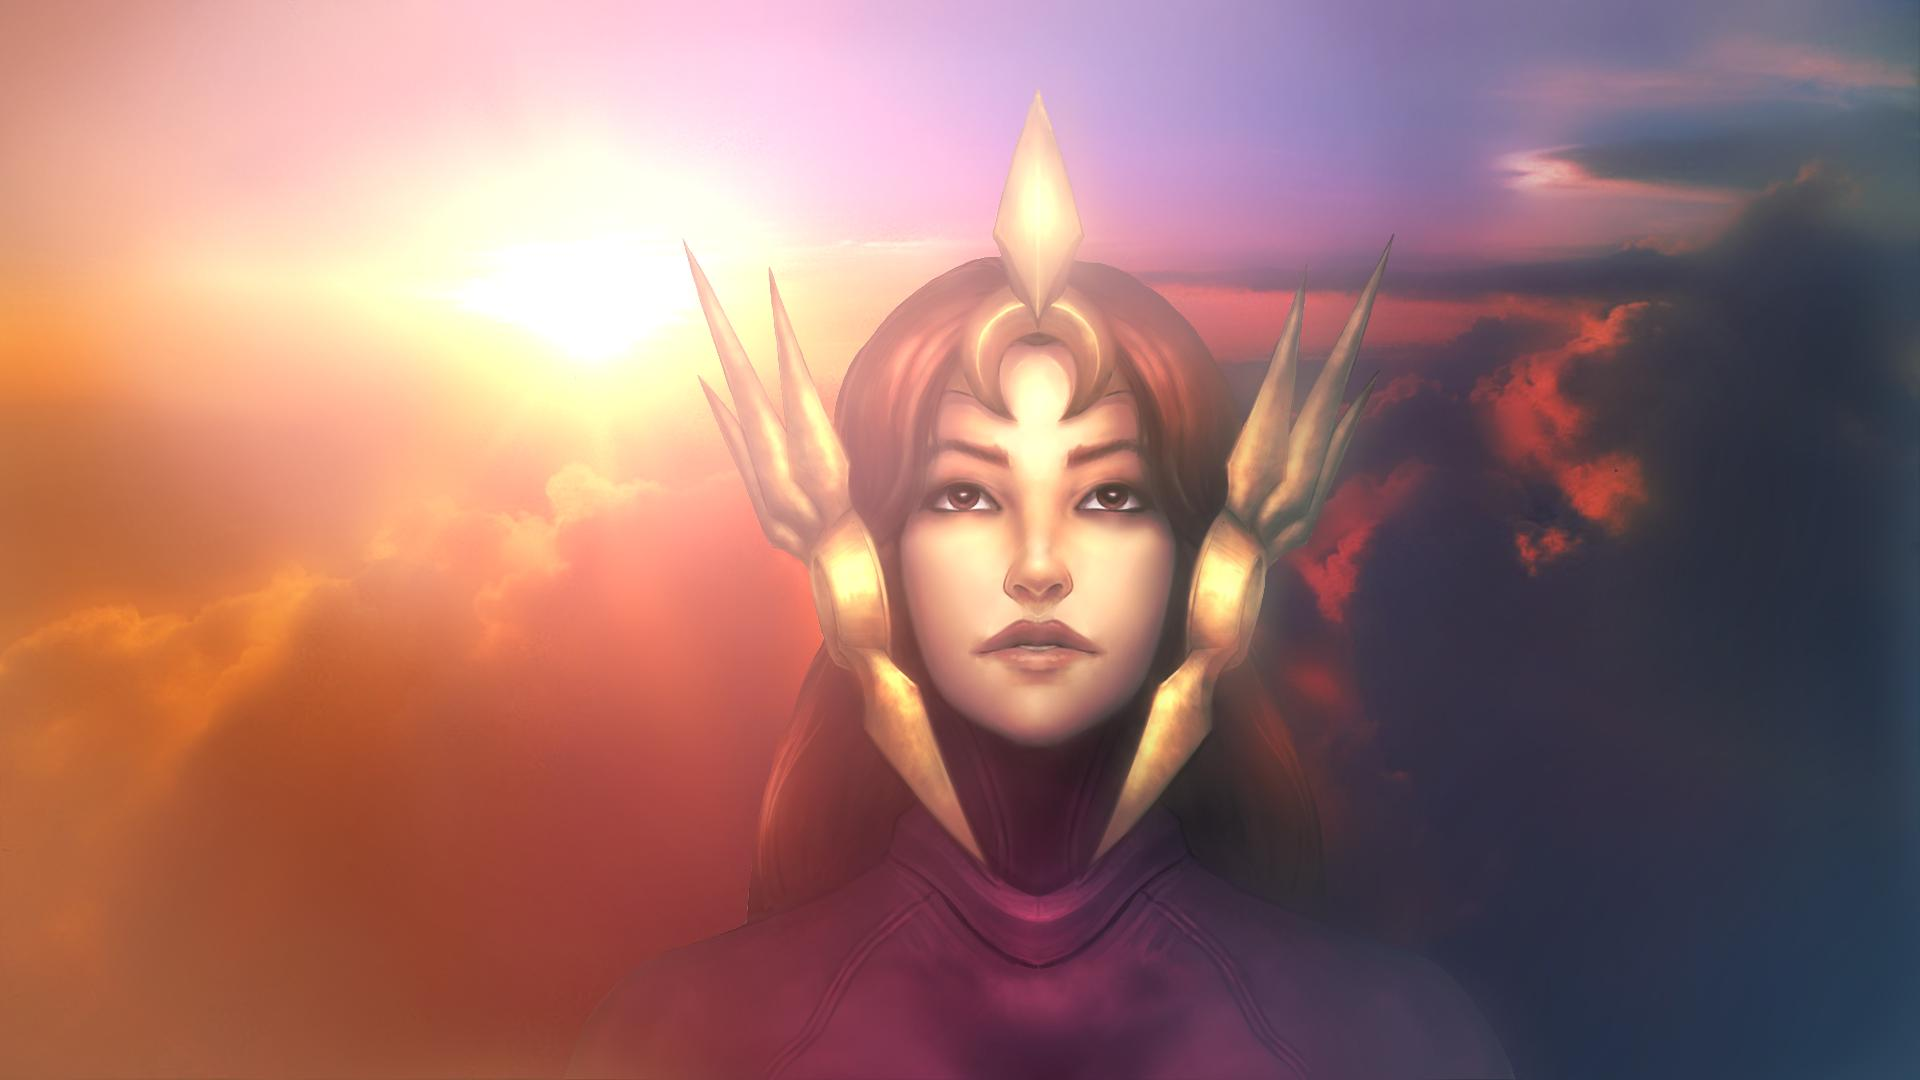 leona wallpaper fan art -#main